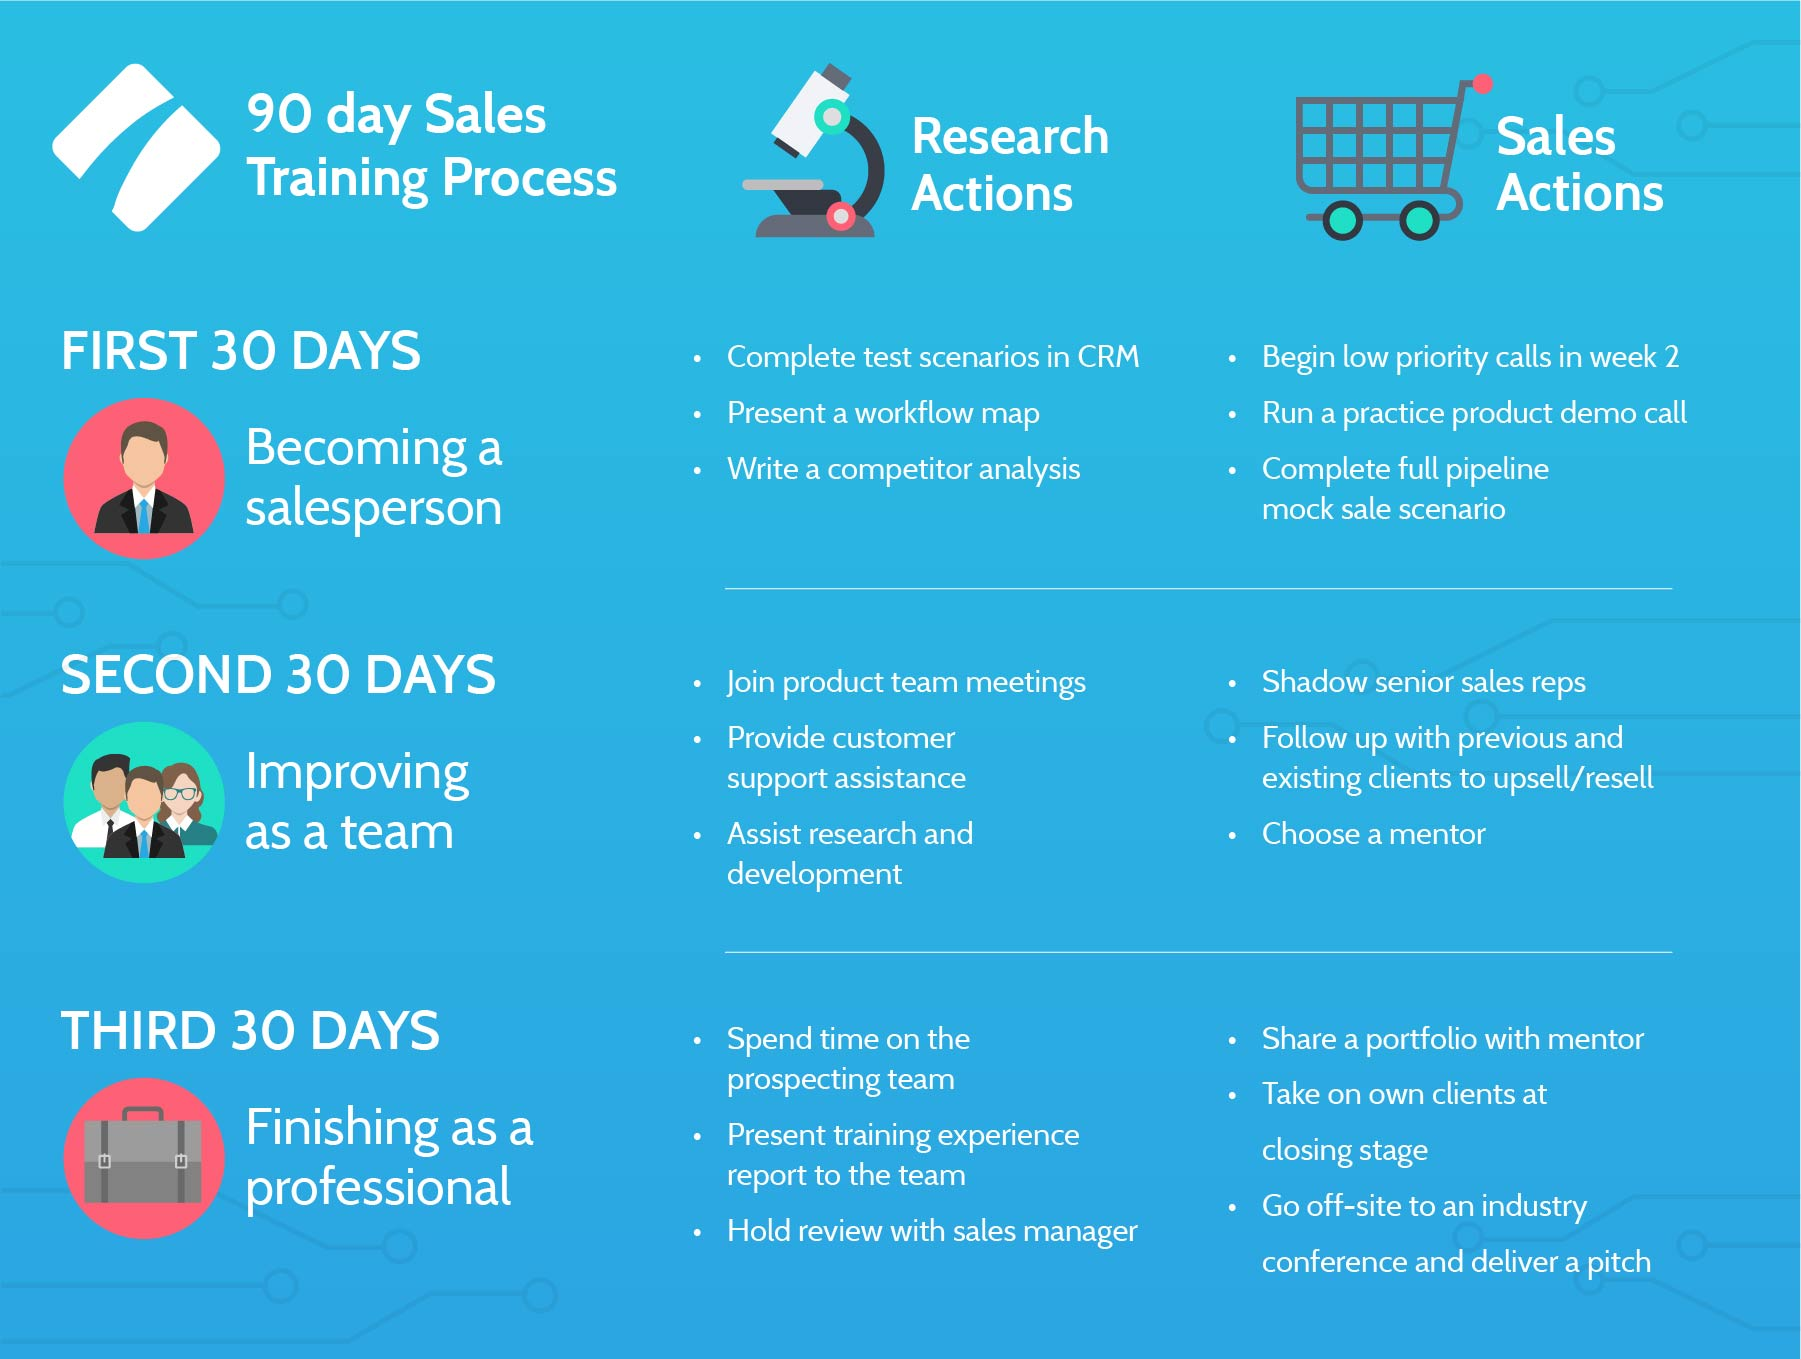 90 Day Sales Training Process